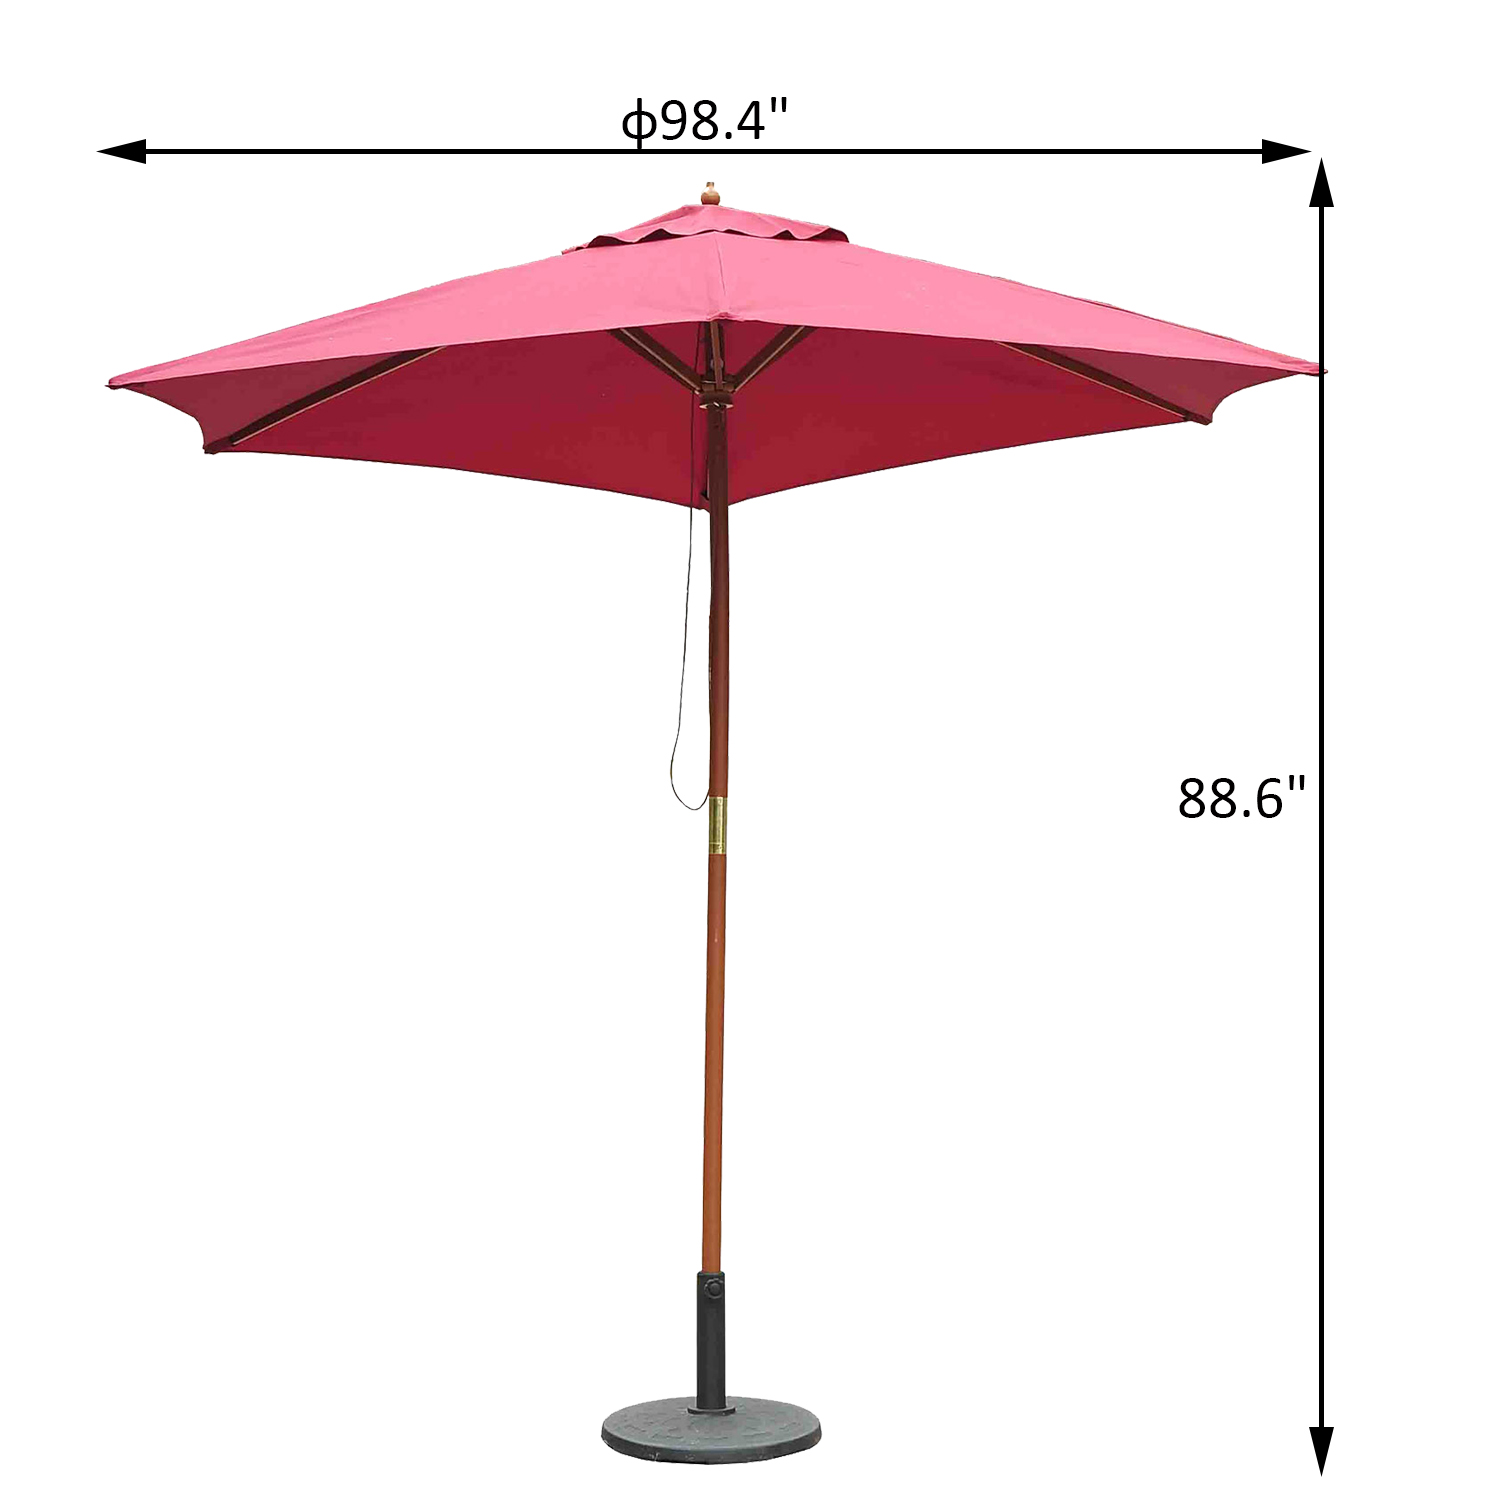 Image of CAD $49.99 Outsunny ?8.2' x 7.4'H Bamboo Wooden Round Market Patio Sun Umbrella Garden Parasol Outdoor Sunshade Canopy, Wine Red / Canopy Canada 25093577055